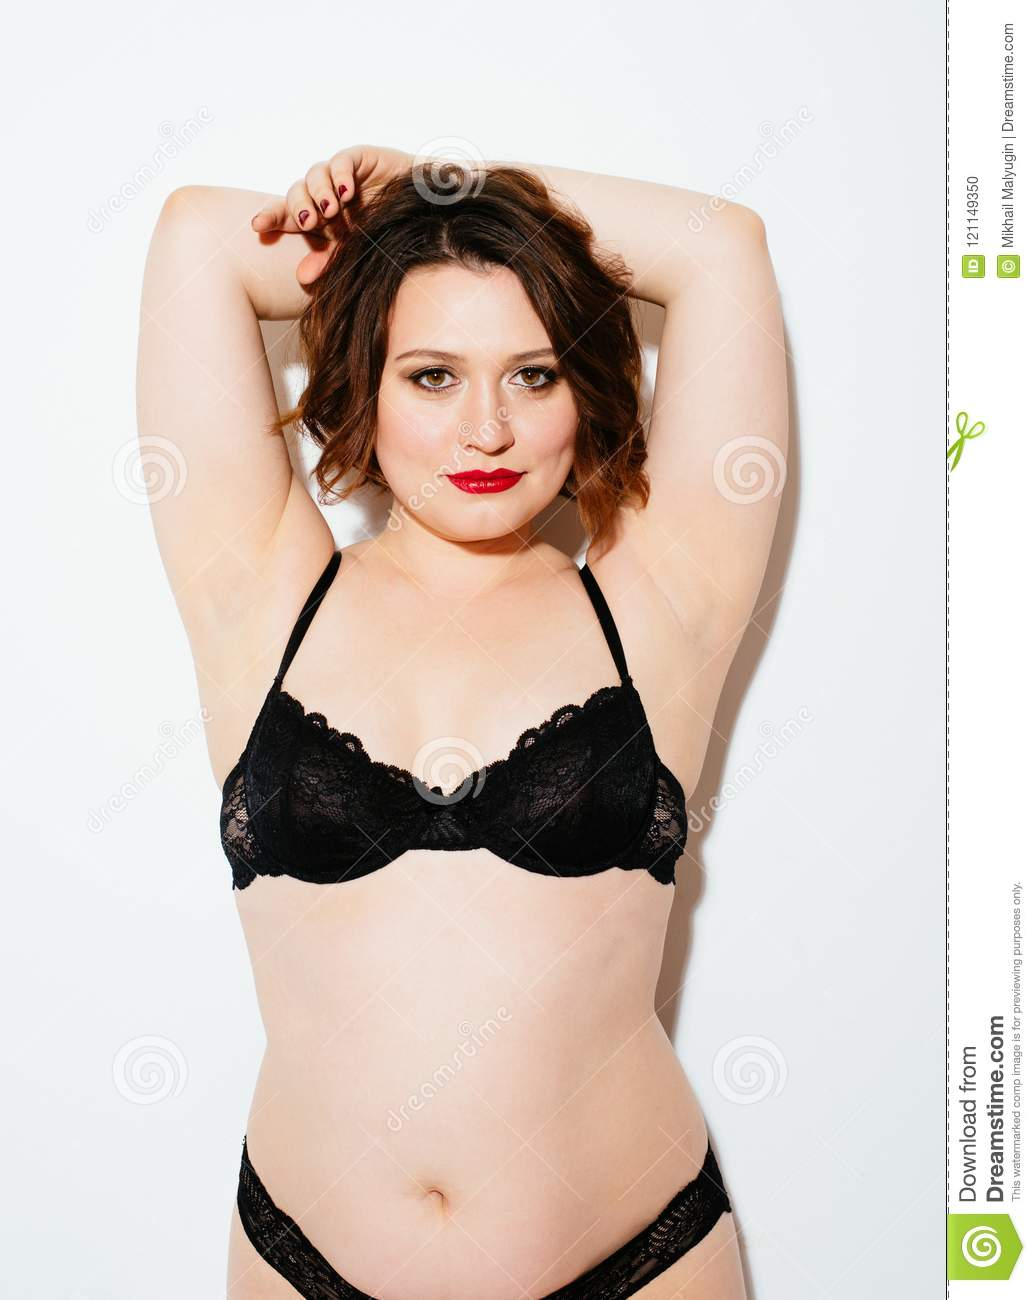 01256c1070 Plus Size Woman In Lingerie Stock Photo - Image of lady